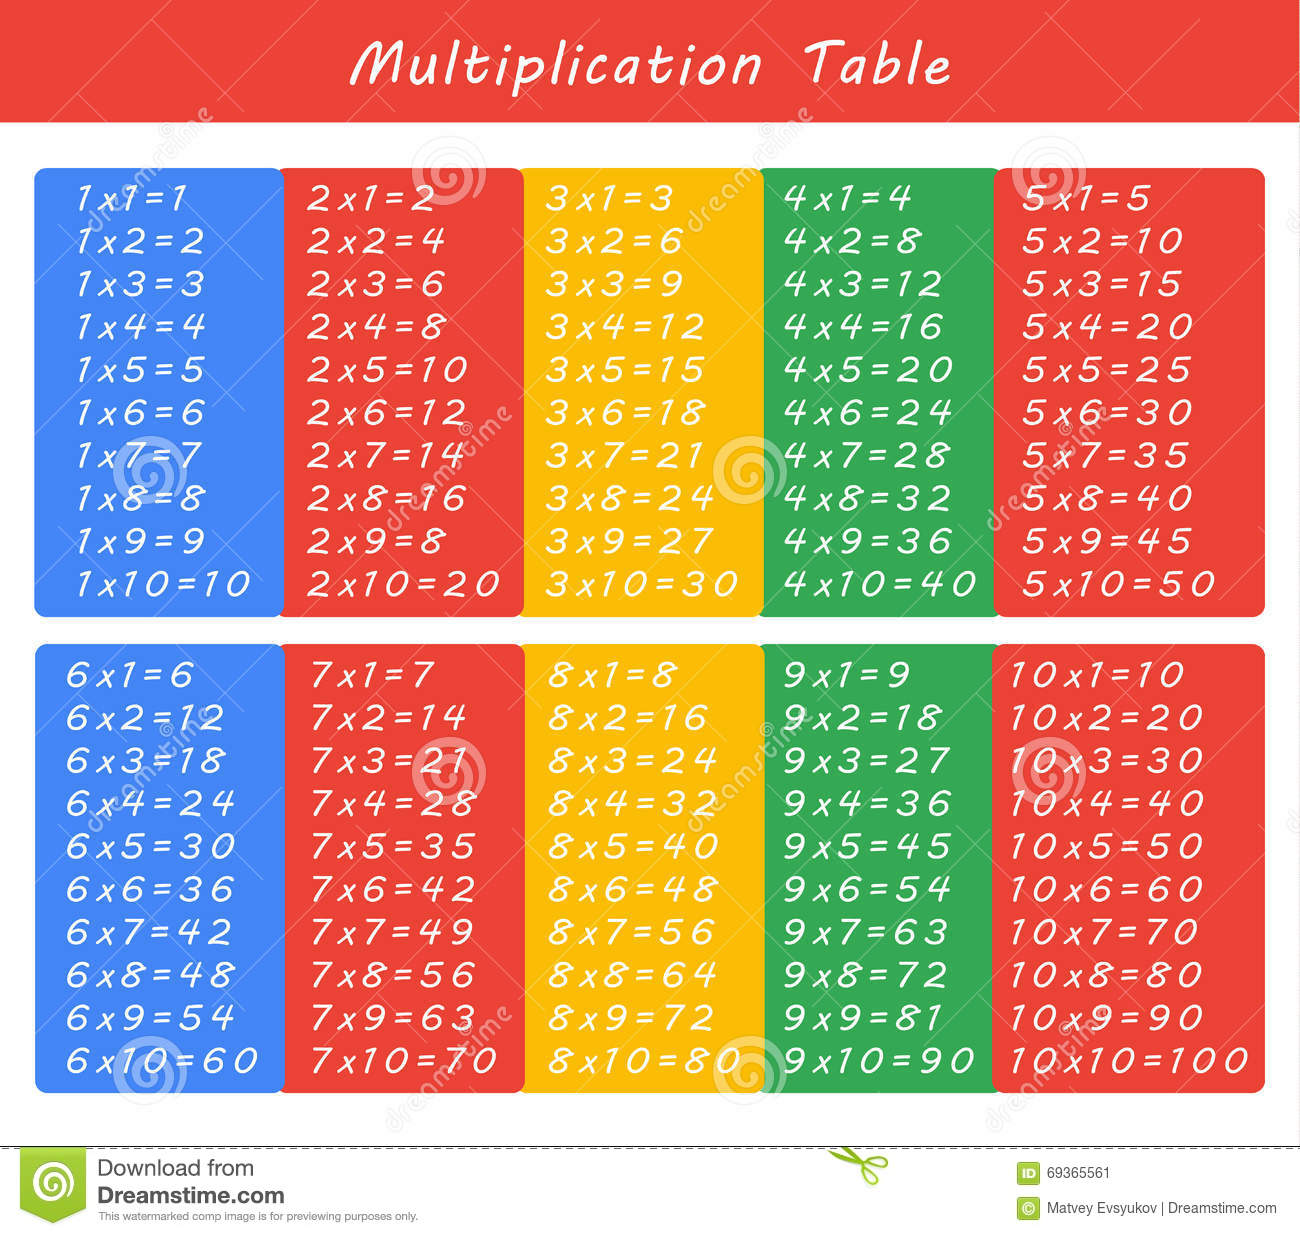 Colorful multiplication table between 1 to 10 as educational material.